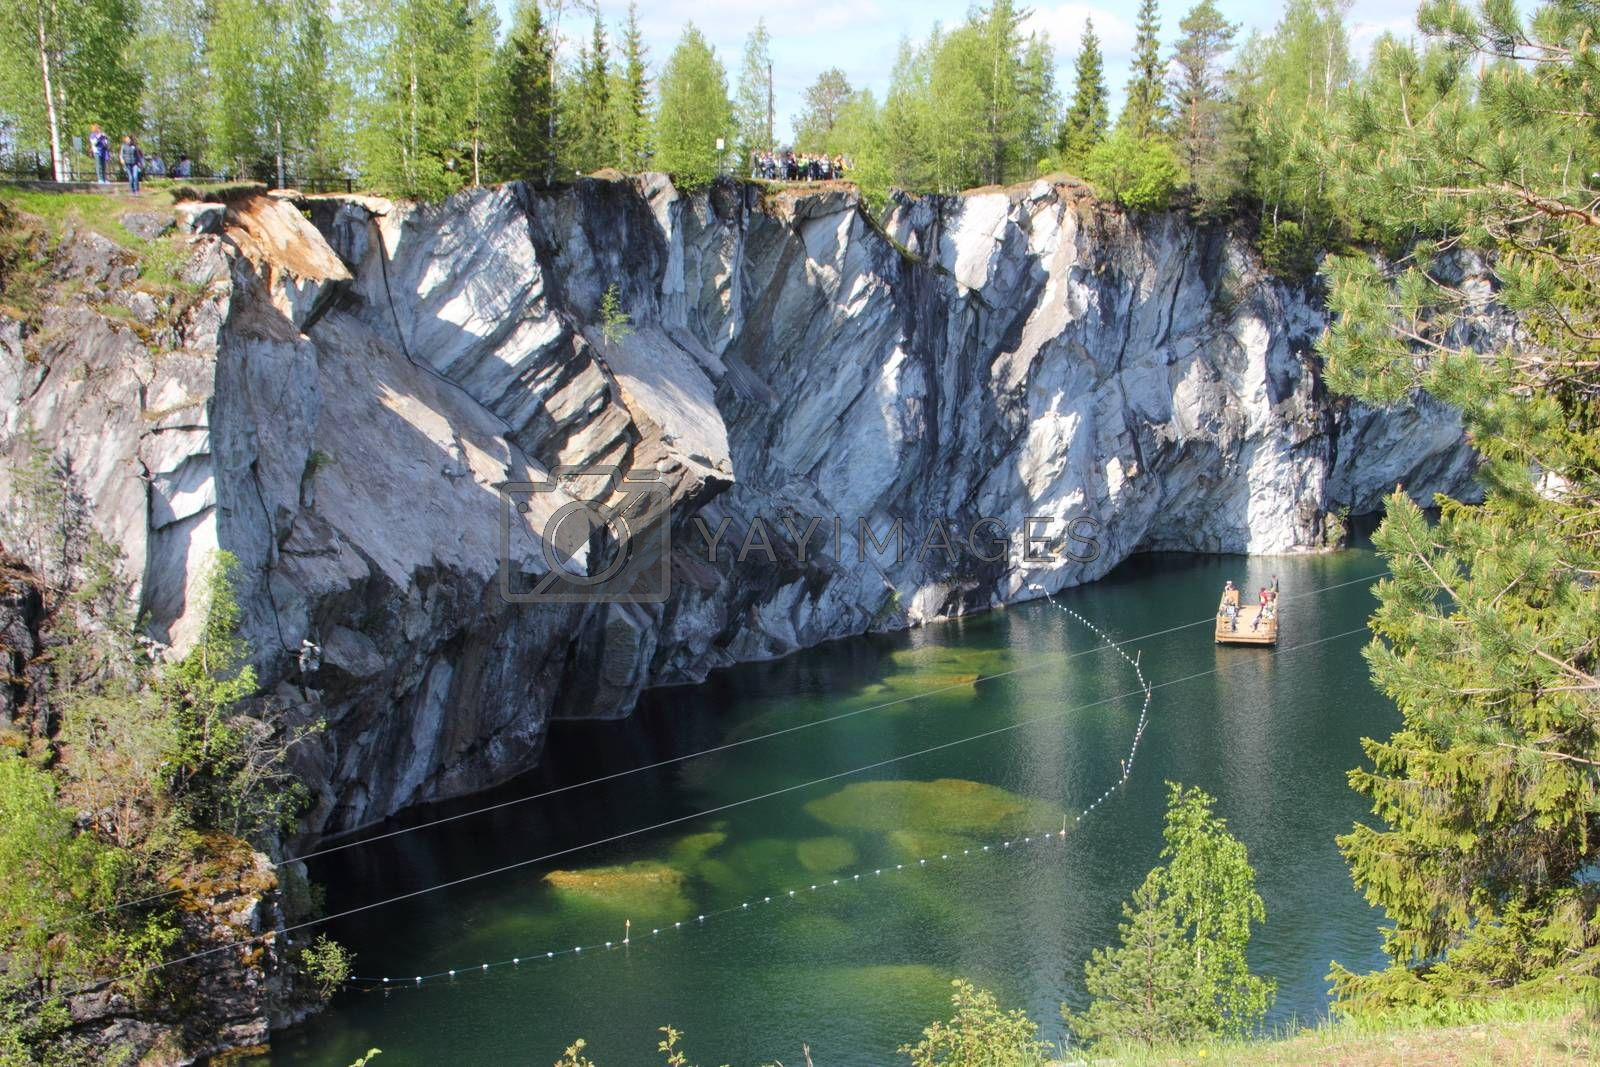 Marble quarry in Ruskeala, Republic of Karelia, Russia. View from above